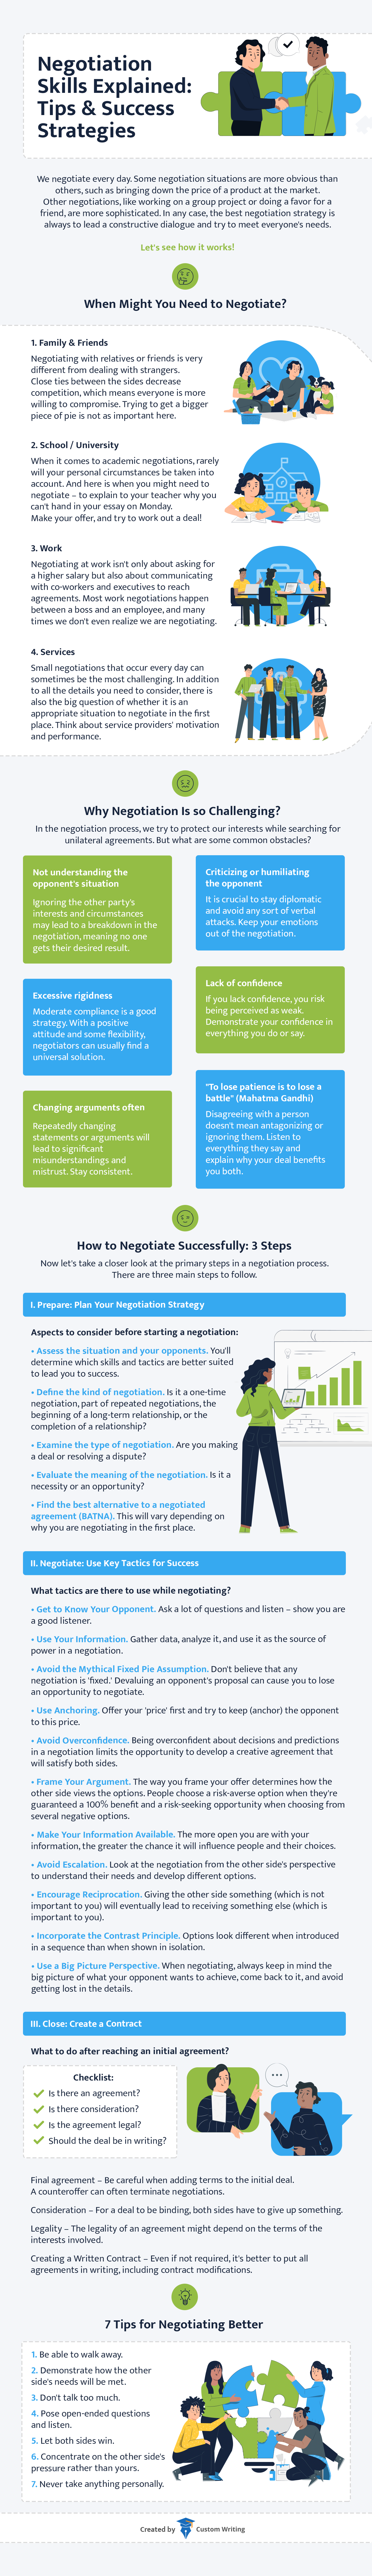 The infographic provides detailed explanation of negotiation skills: guidelines, tips & strategies.